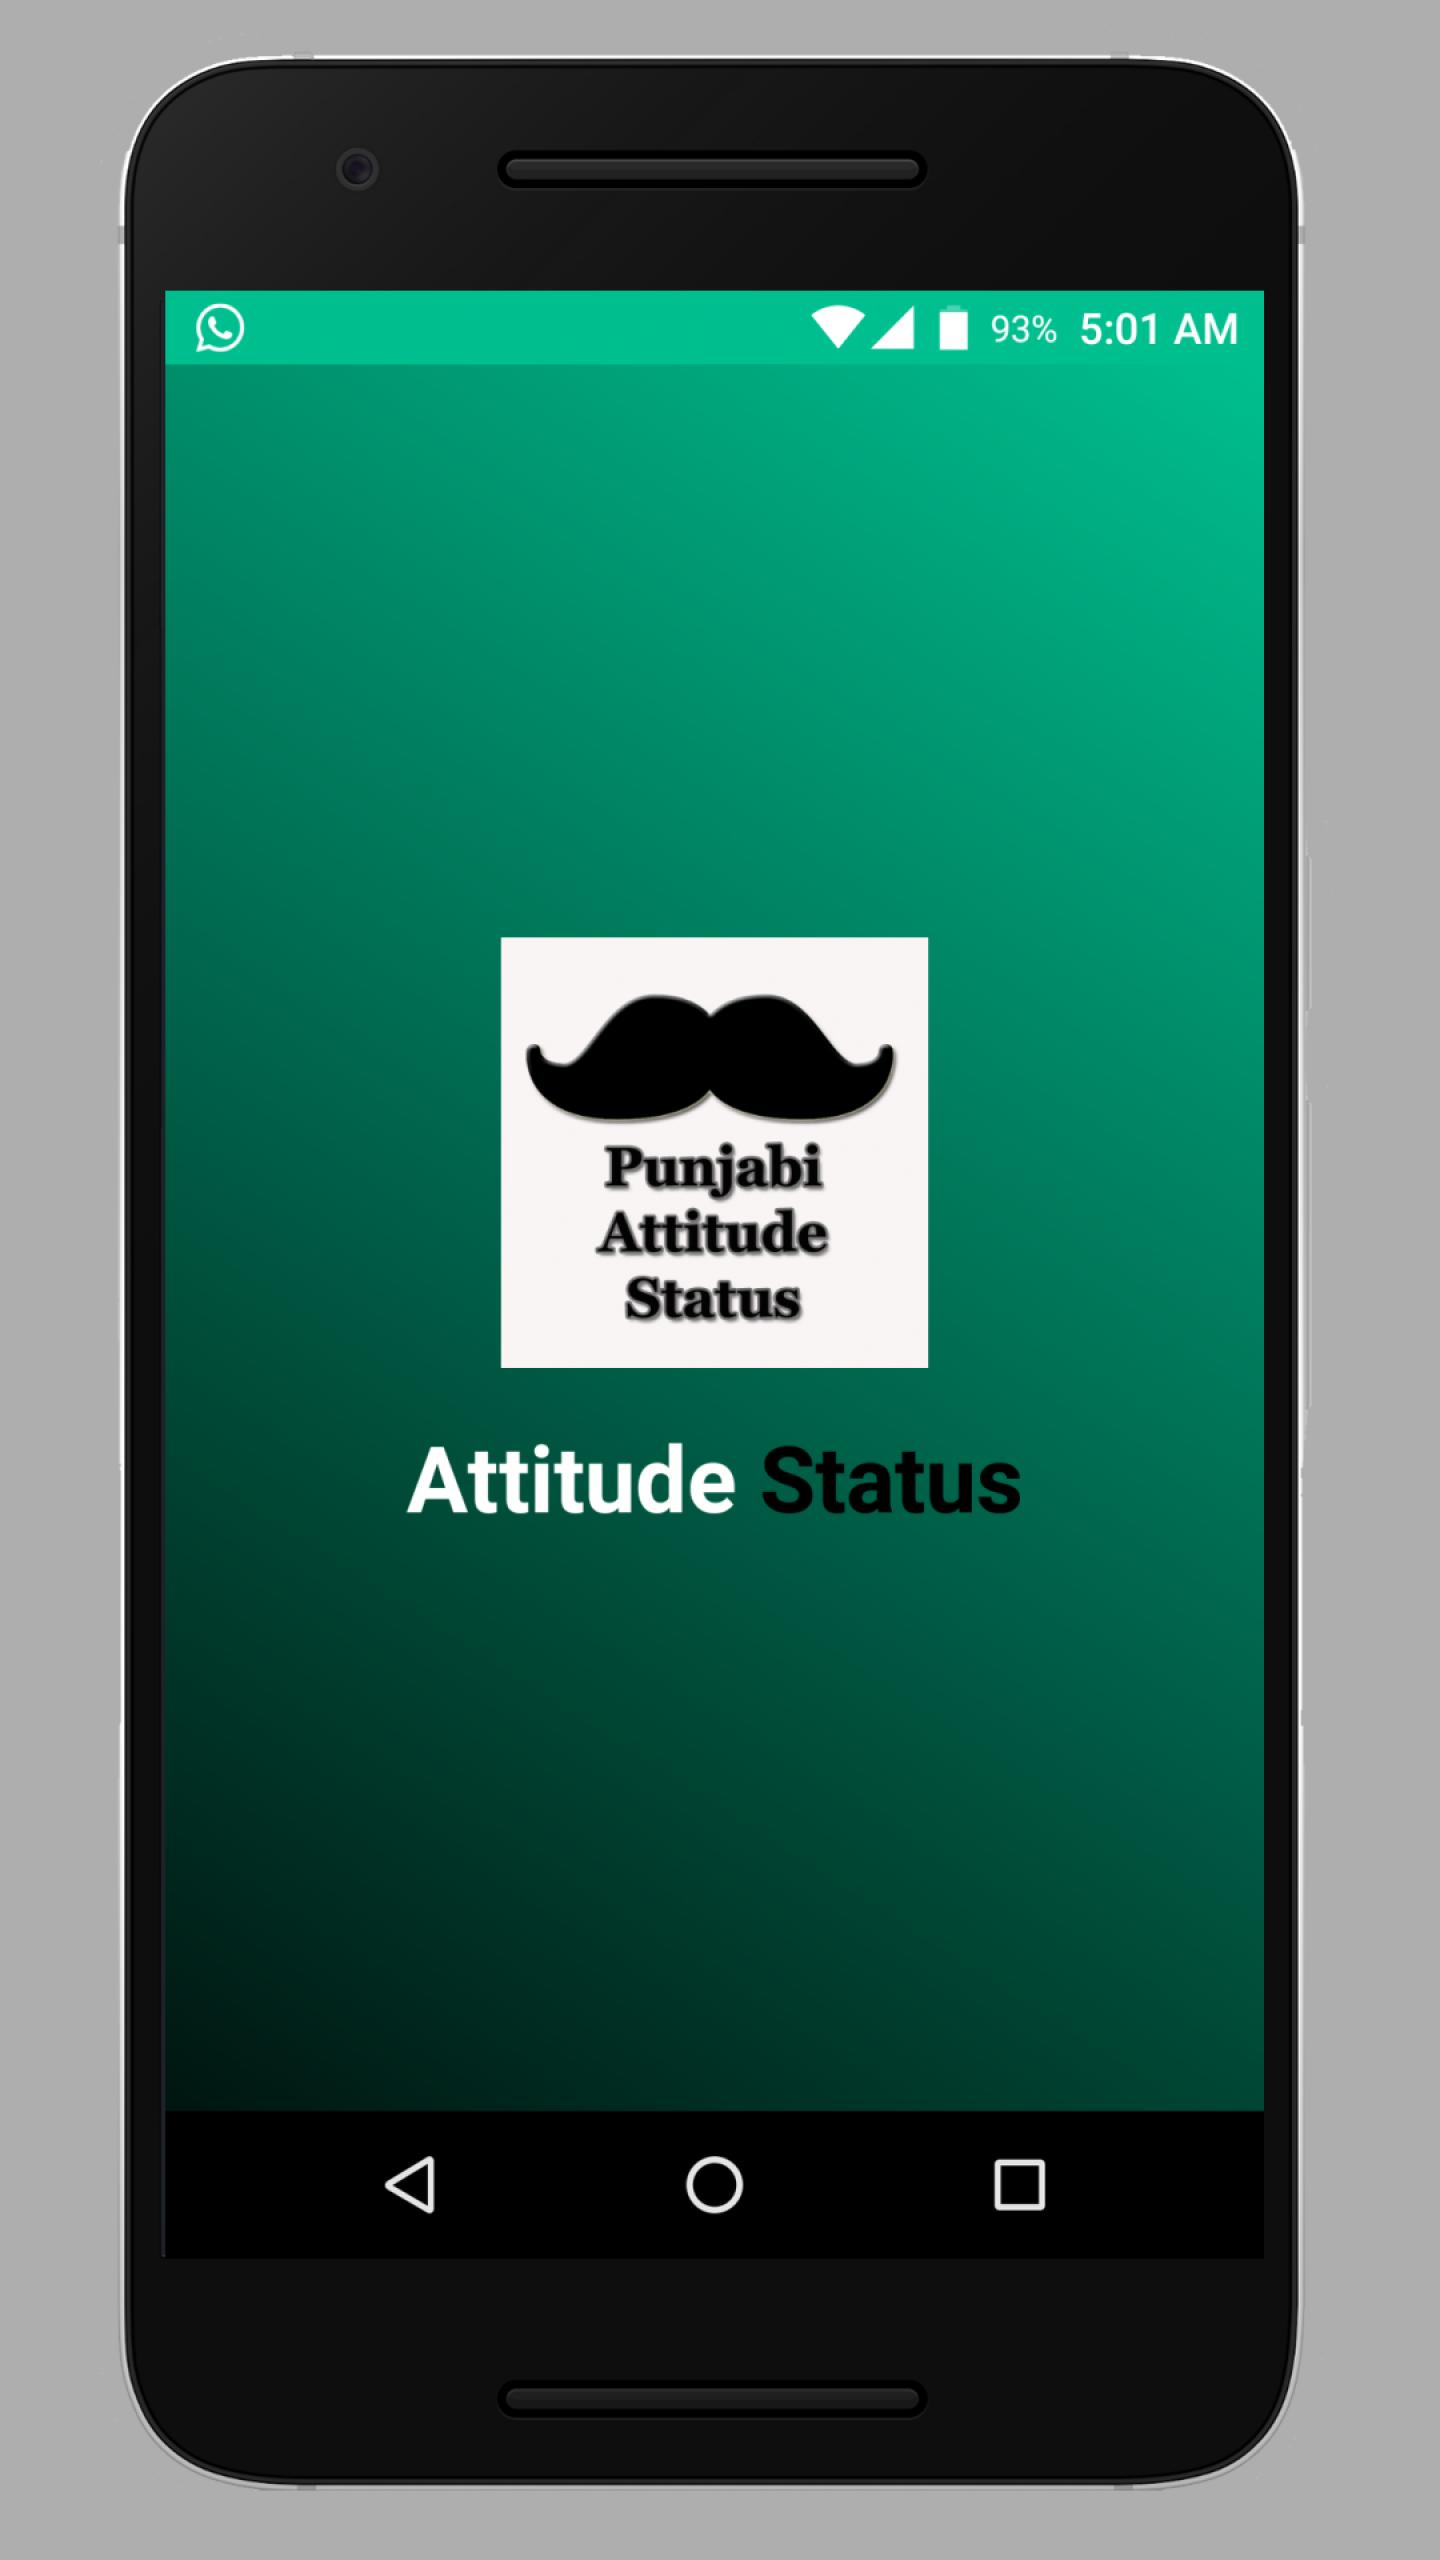 Punjabi Attitude Status for Android - APK Download